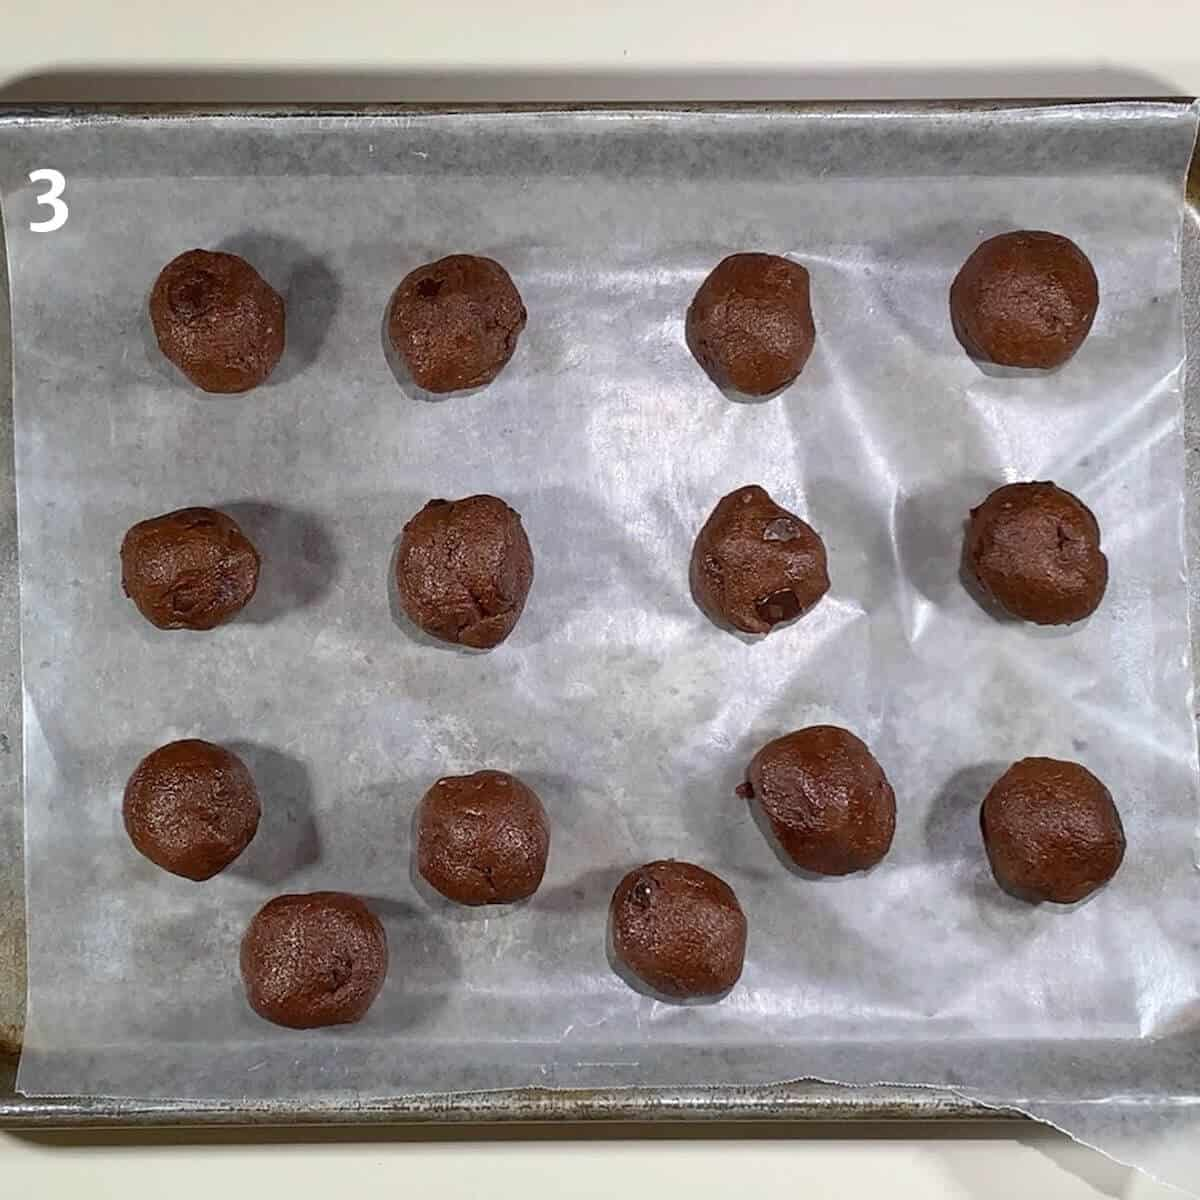 Chocolate Chocolate Chip cookie dough portions on wax paper lined tray for freezing.